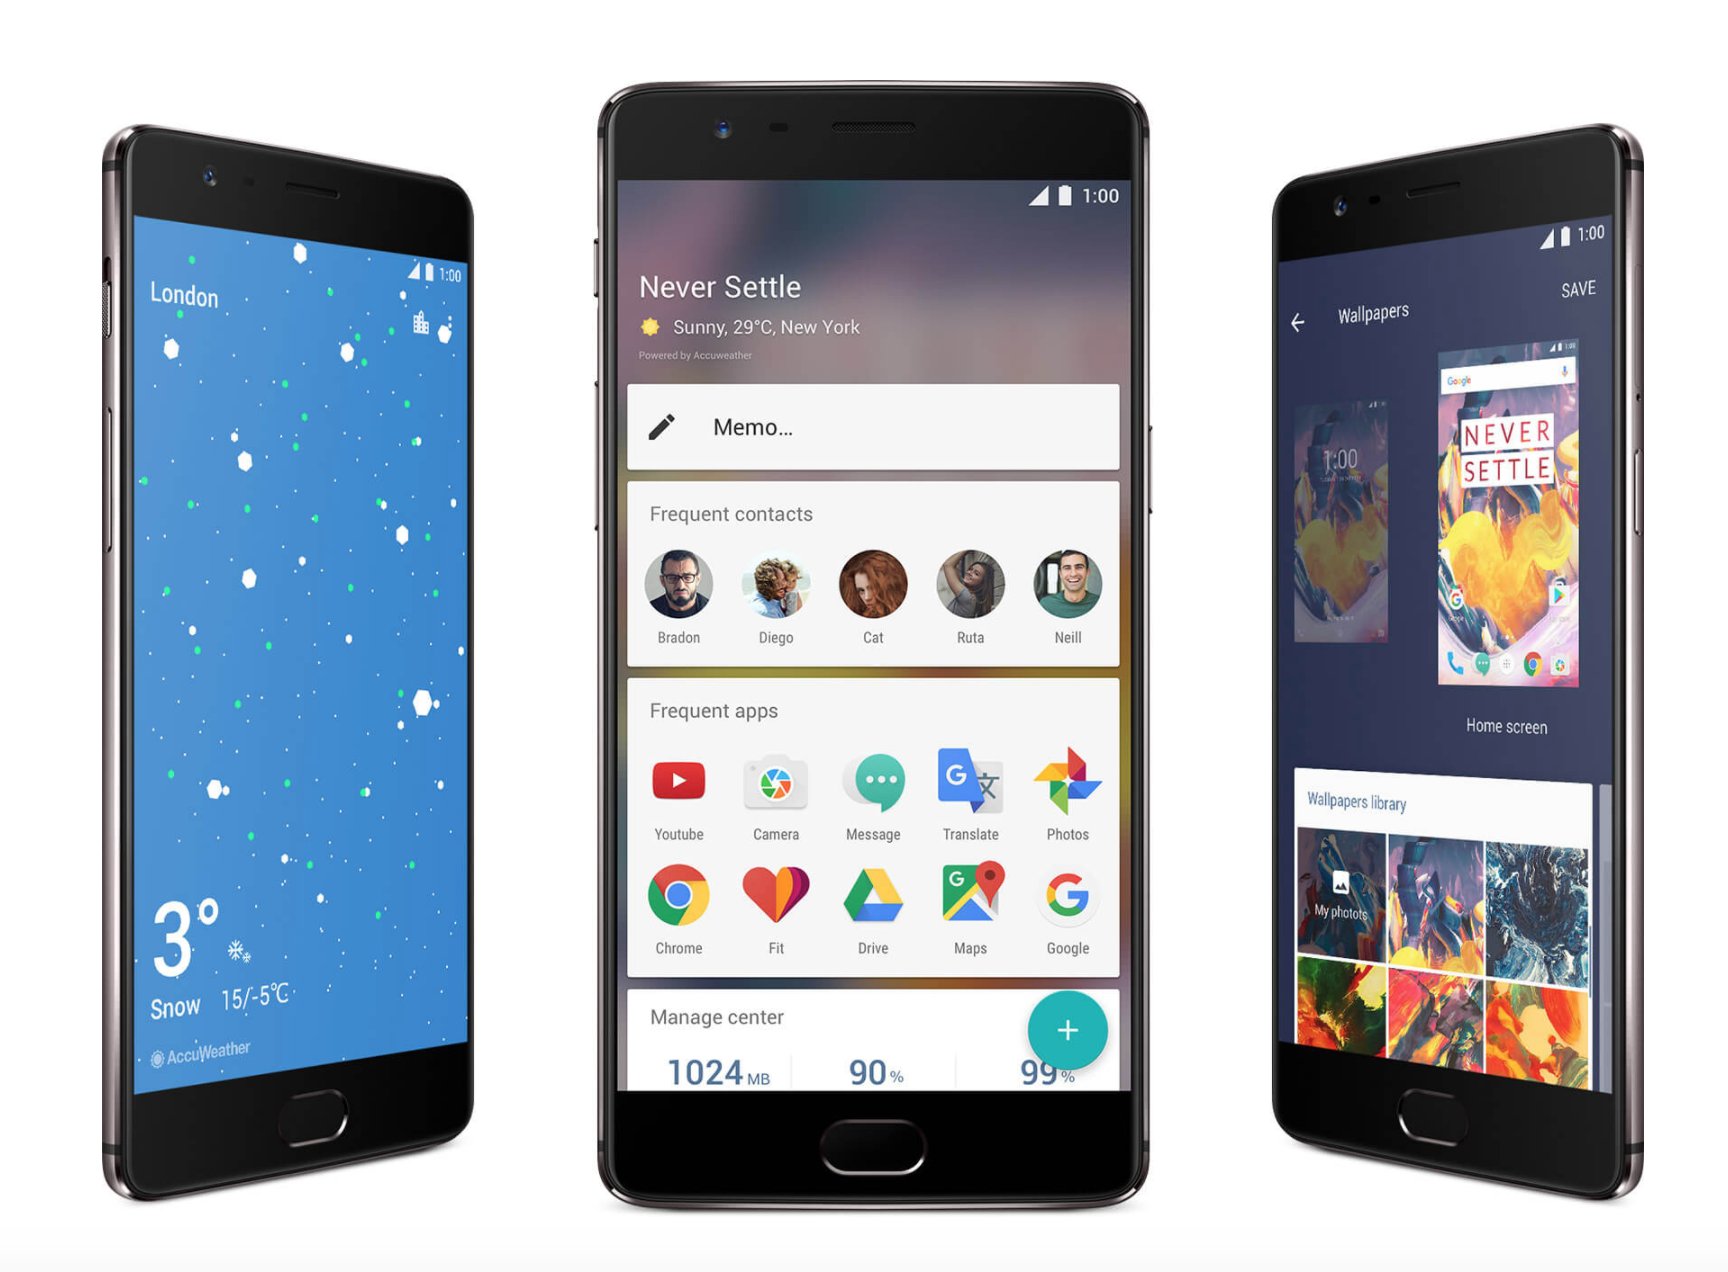 Screen Shot 2016 11 16 at 9.27.24 AM - OnePlus unveils the OnePlus 3T priced at $439